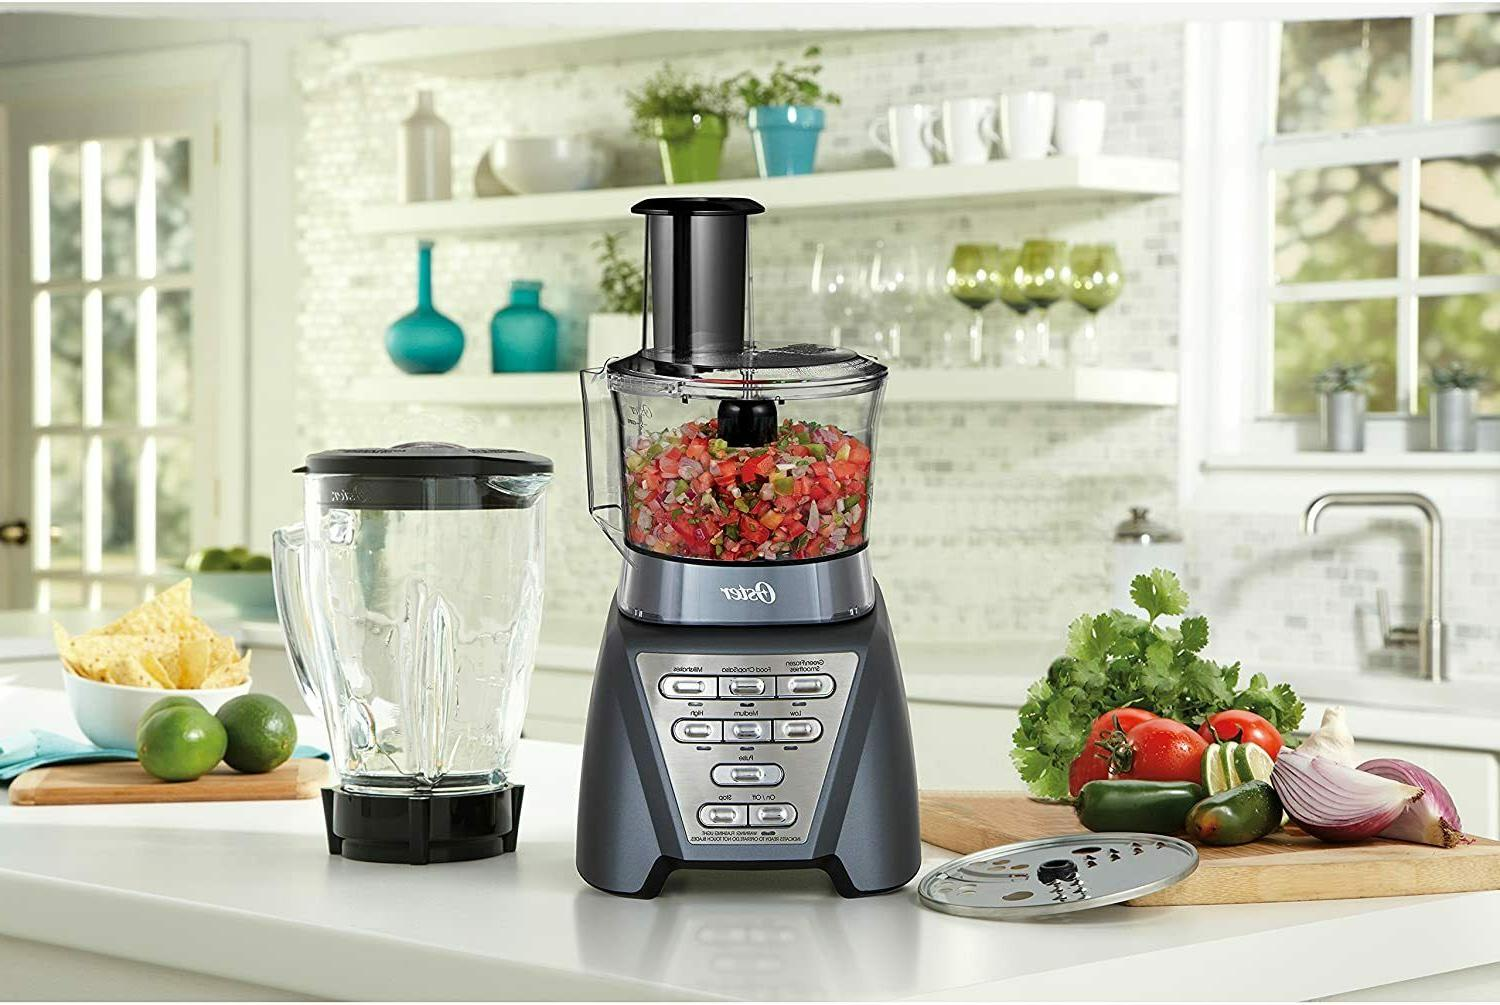 Oster Pro with Jar and Food Processor Metallic